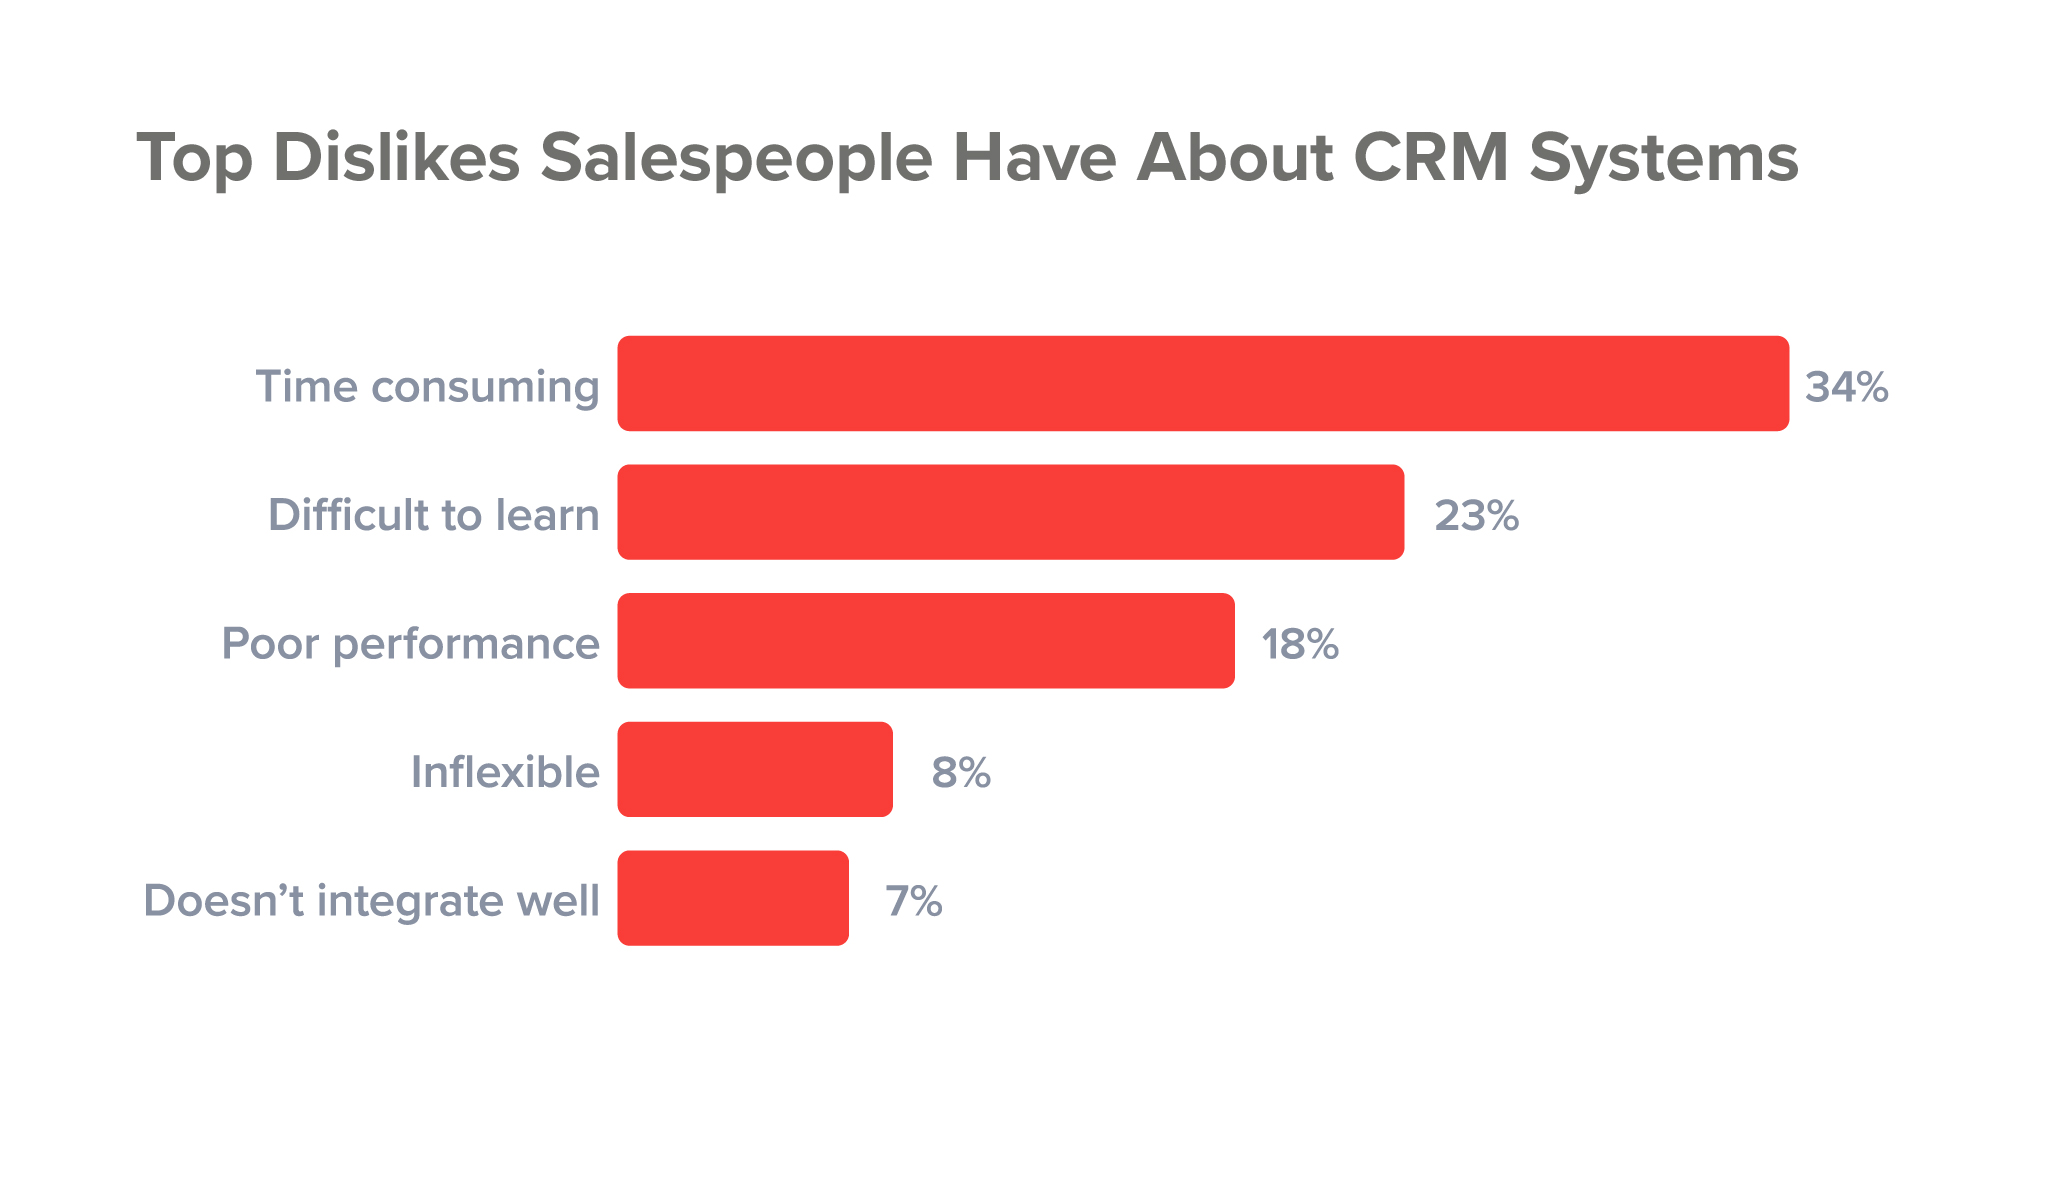 Top dislikes salespeople have about CRM systems